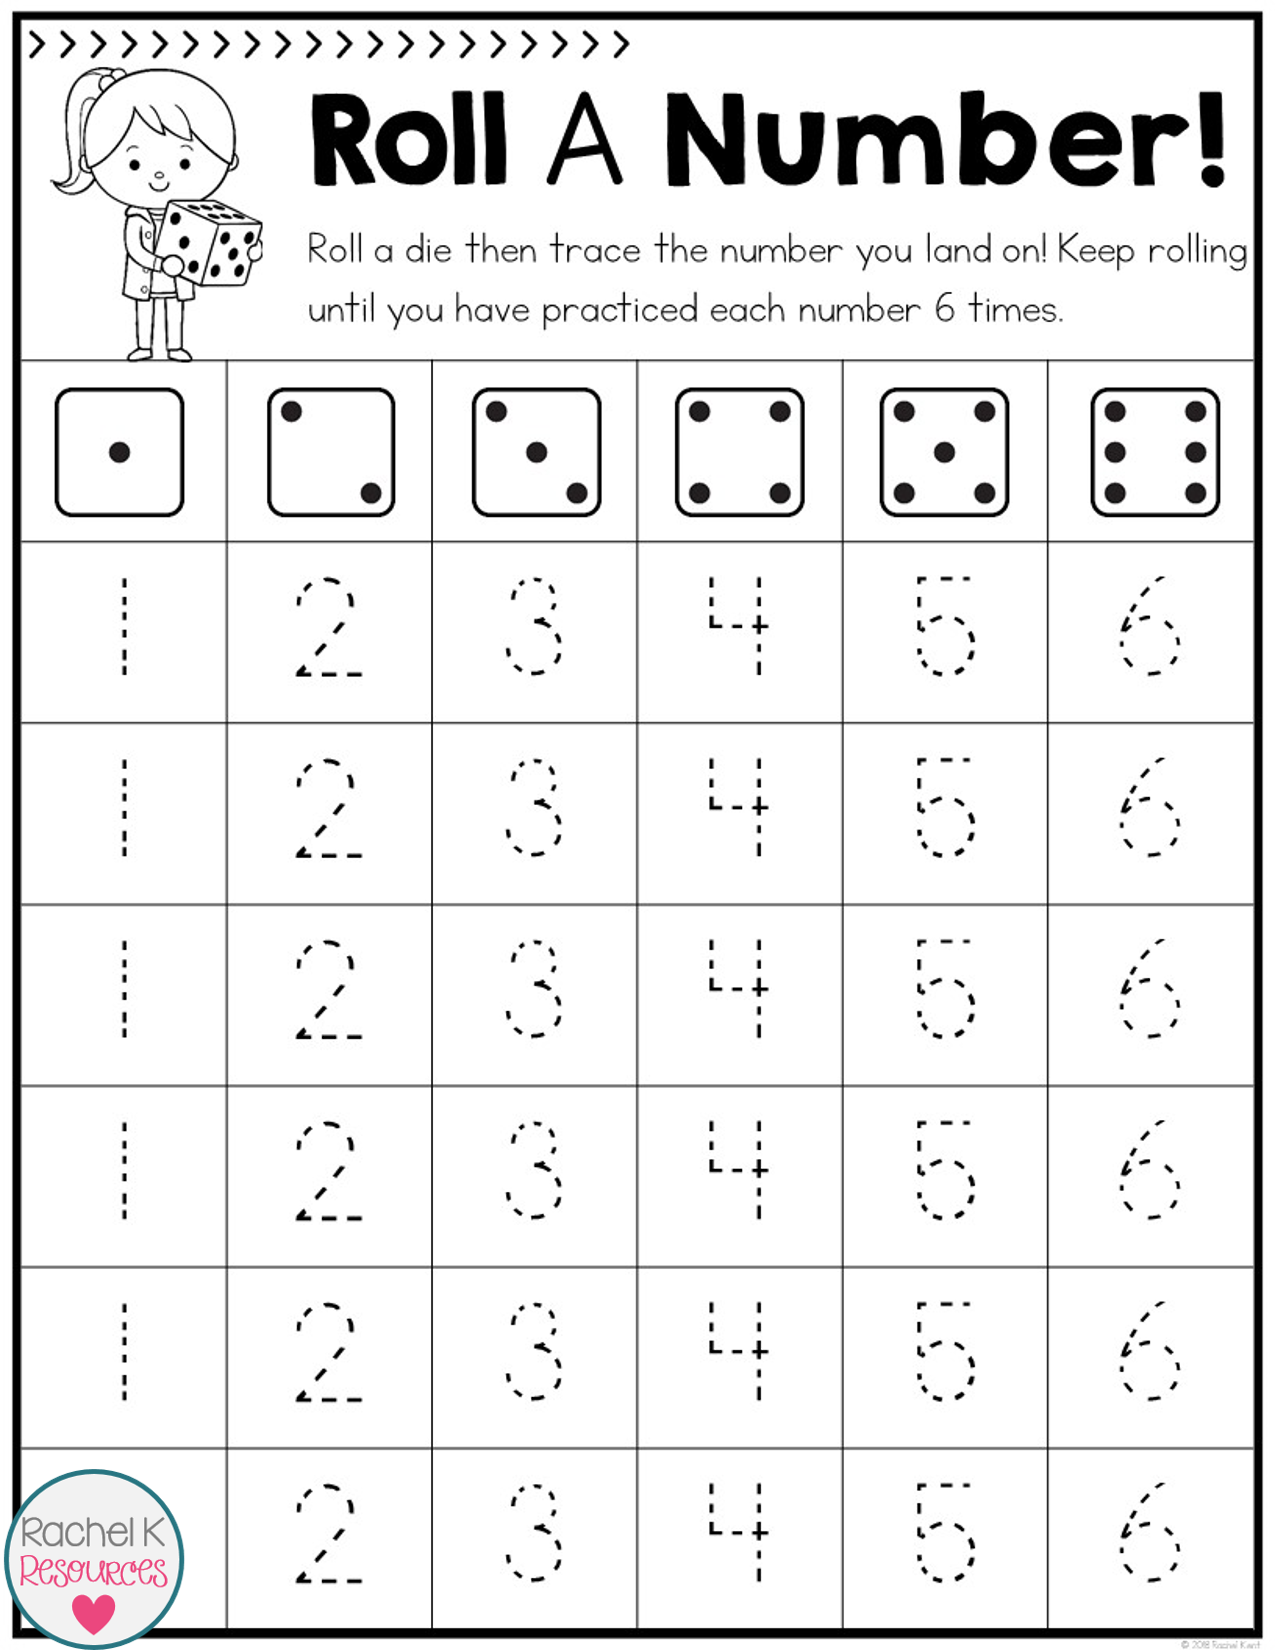 Roll A Number Handwriting Practice Writing numbers